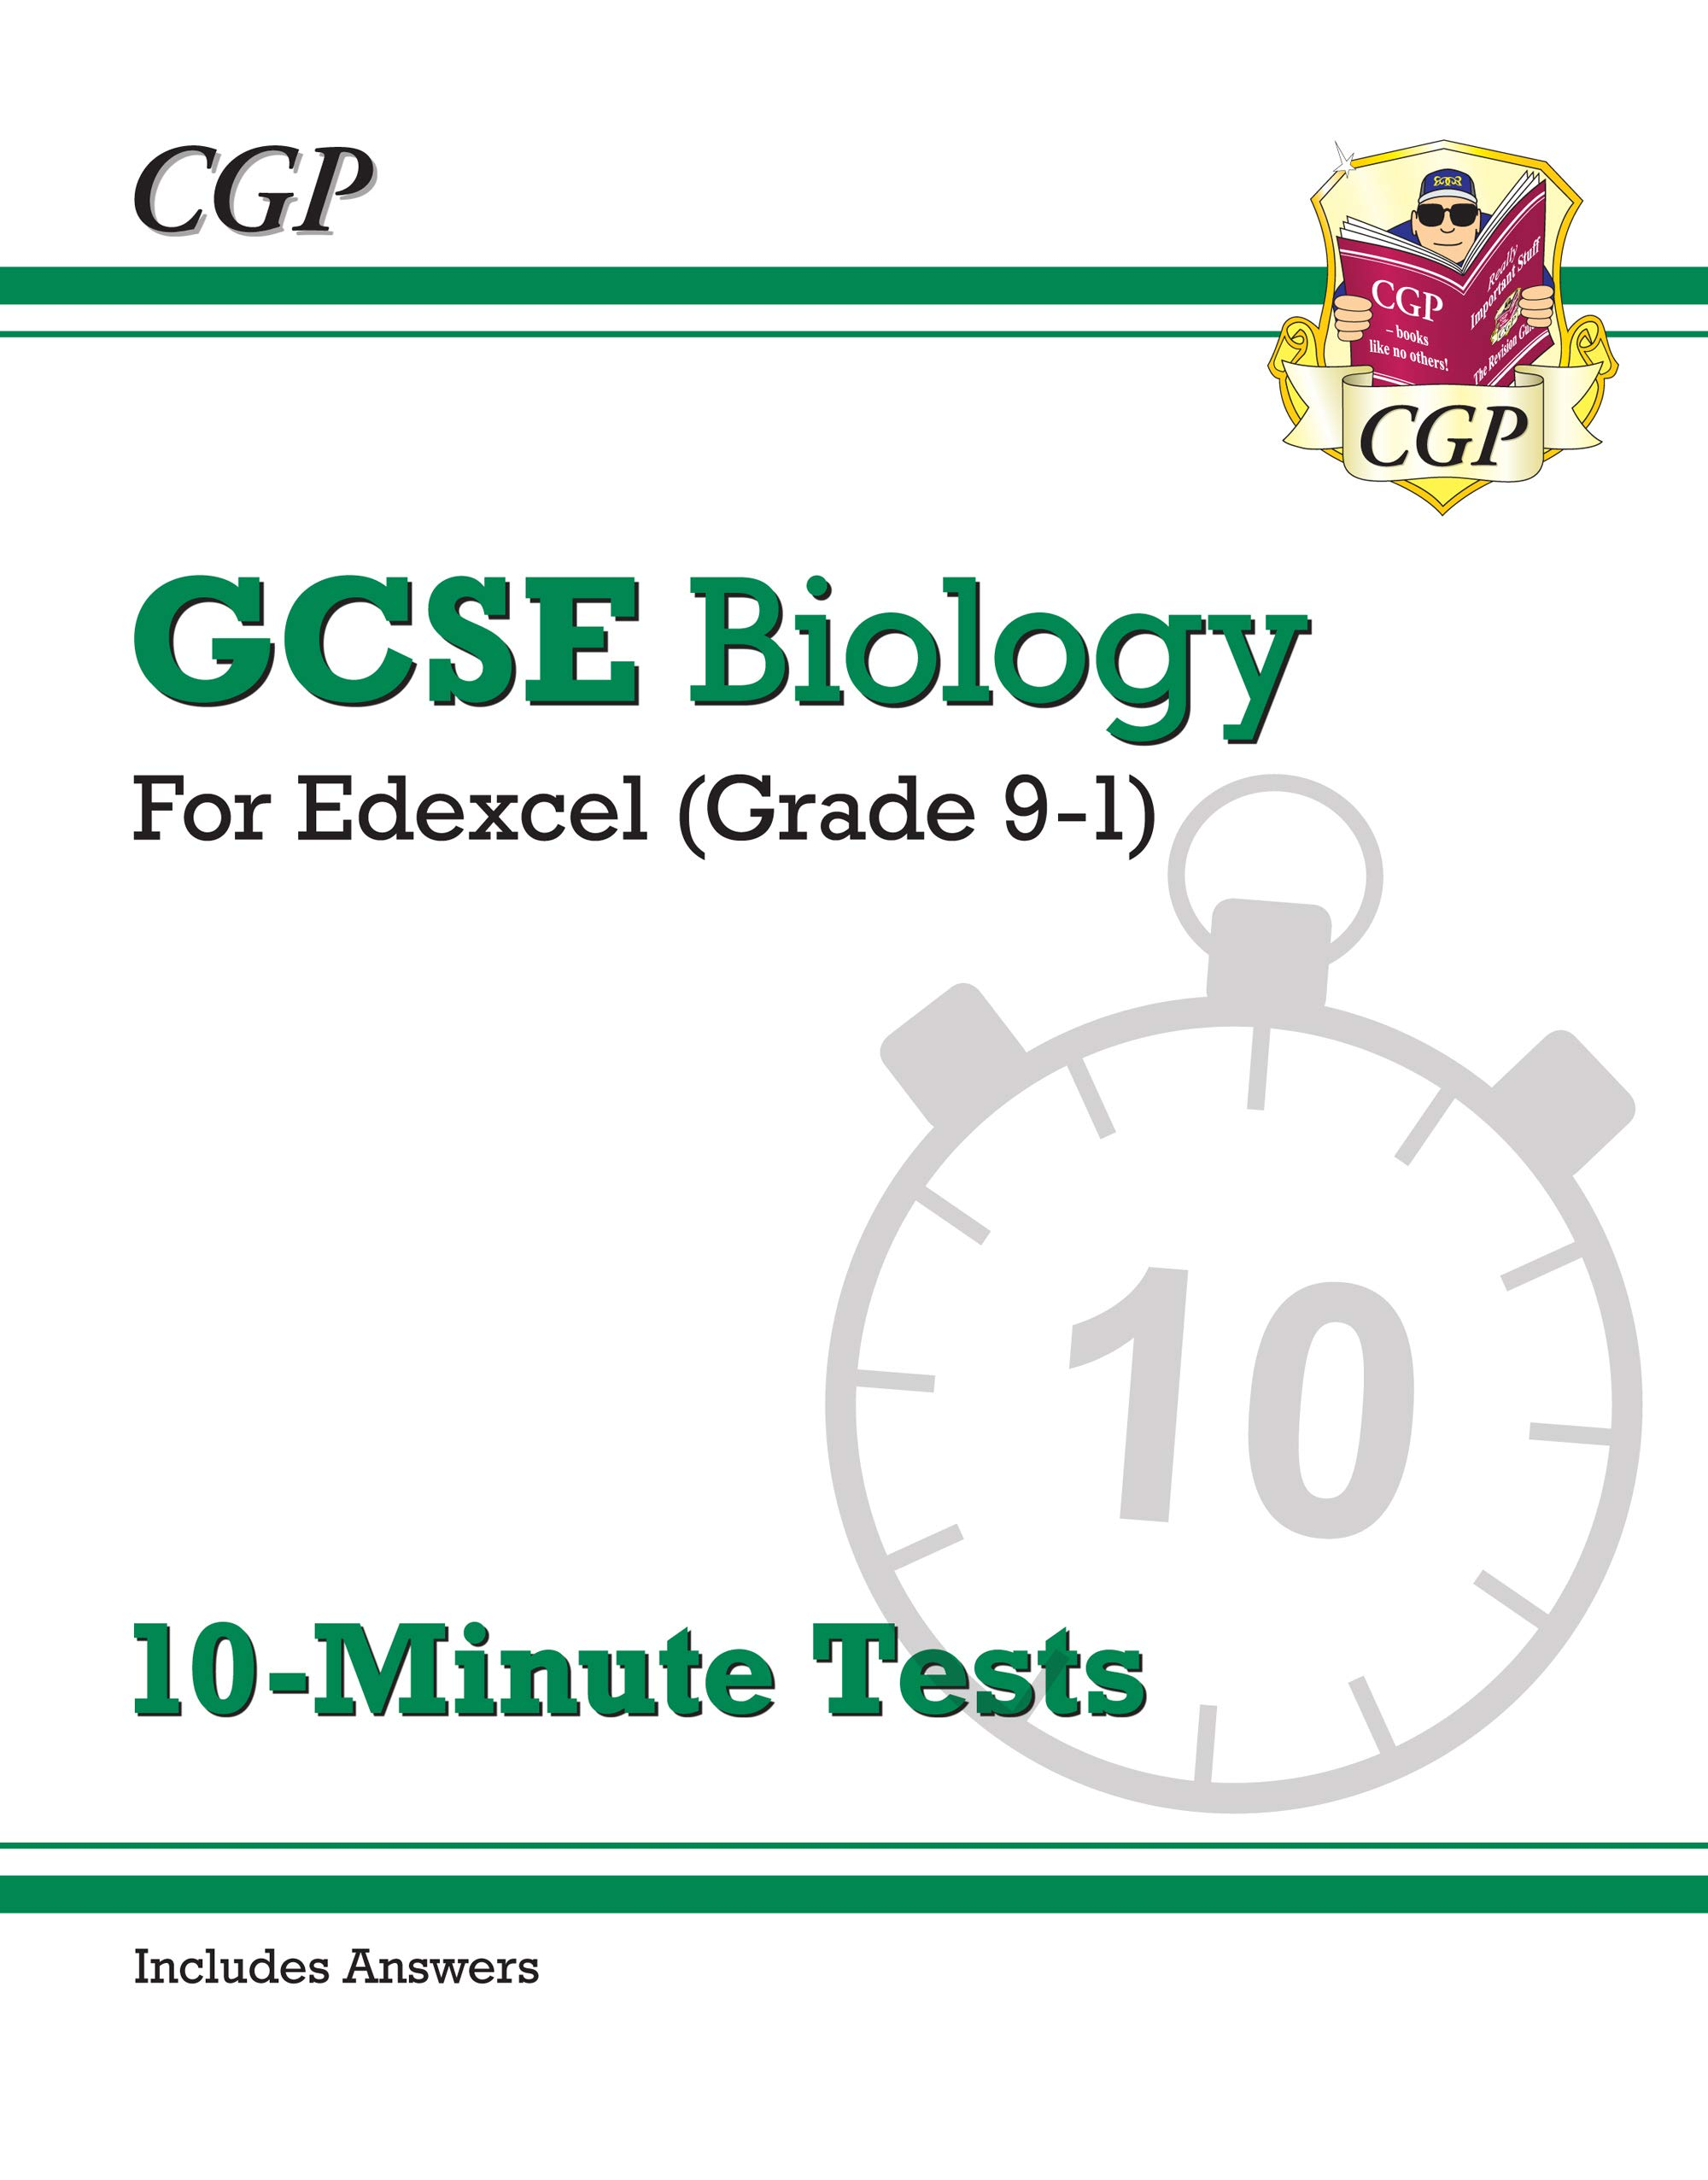 New Grade 9-1 GCSE Biology: Edexcel 10-Minute Tests (with answers) (CGP  GCSE Biology 9-1 Revision): Amazon.co.uk: CGP Books: 9781789080780: Books